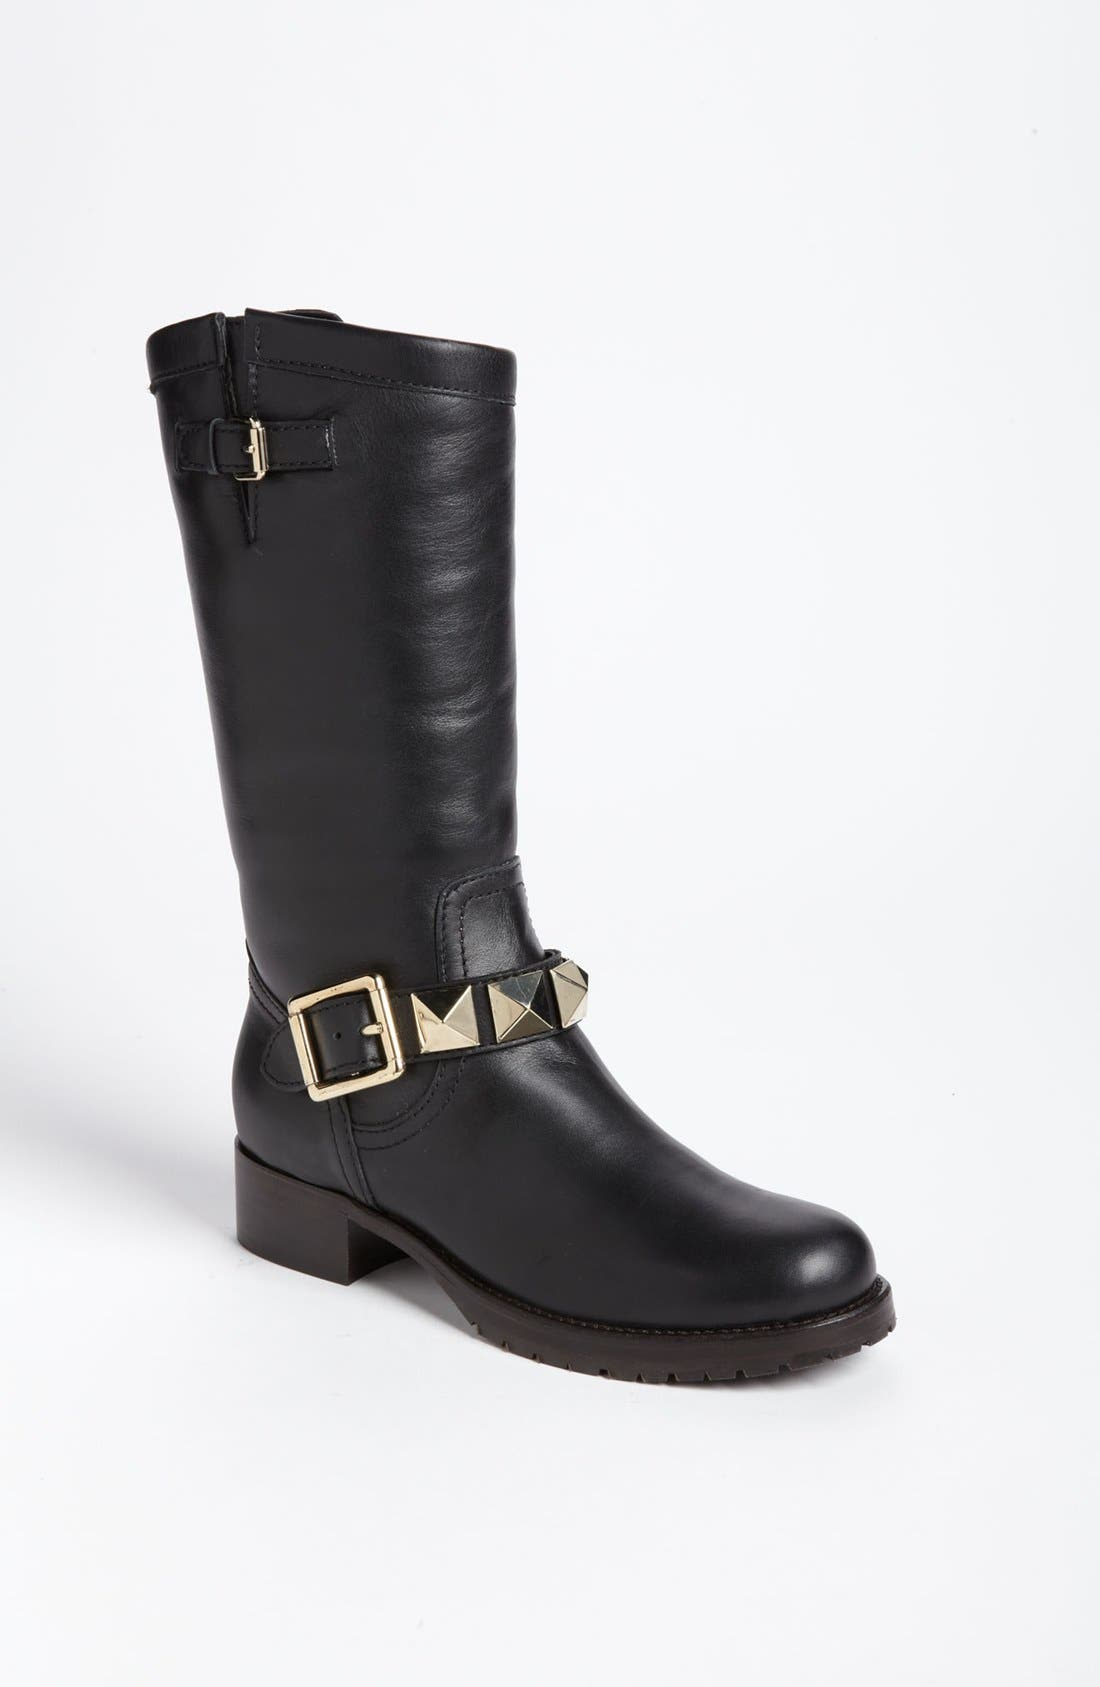 Alternate Image 1 Selected - VALENTINO GARAVANI 'Lock Stud' Biker Boot